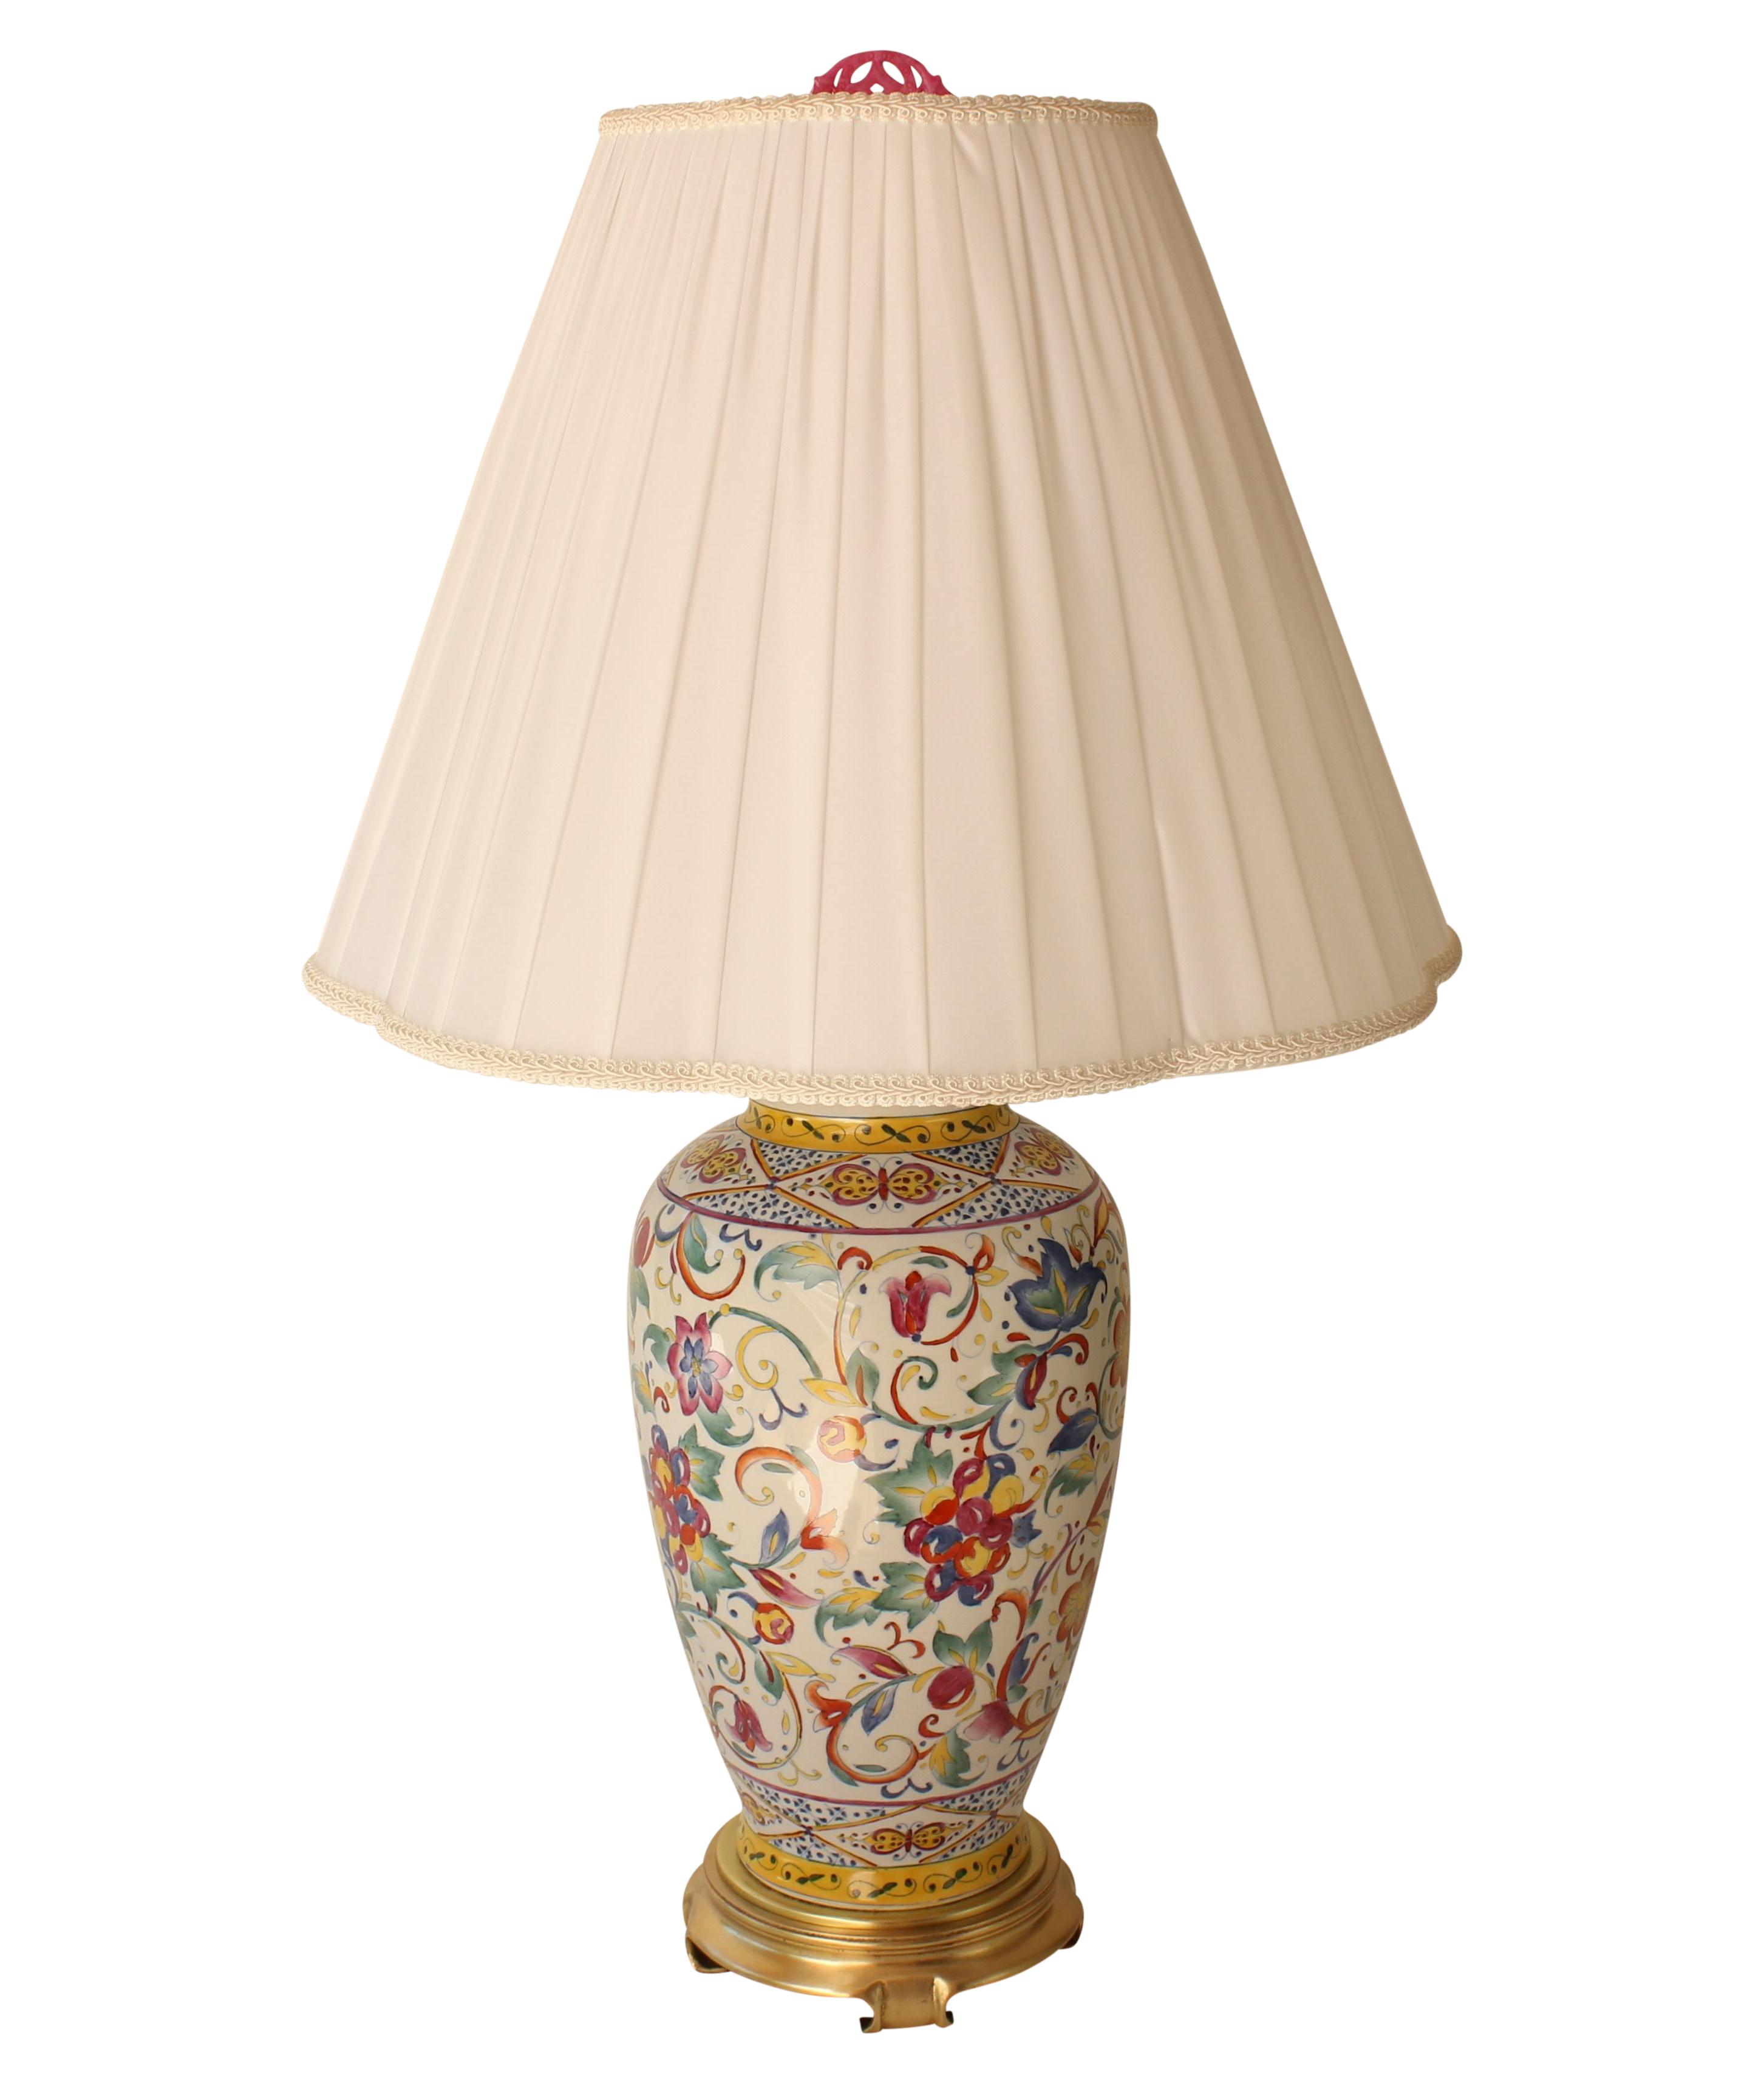 Frederick cooper floral table lamp chairish aloadofball Images